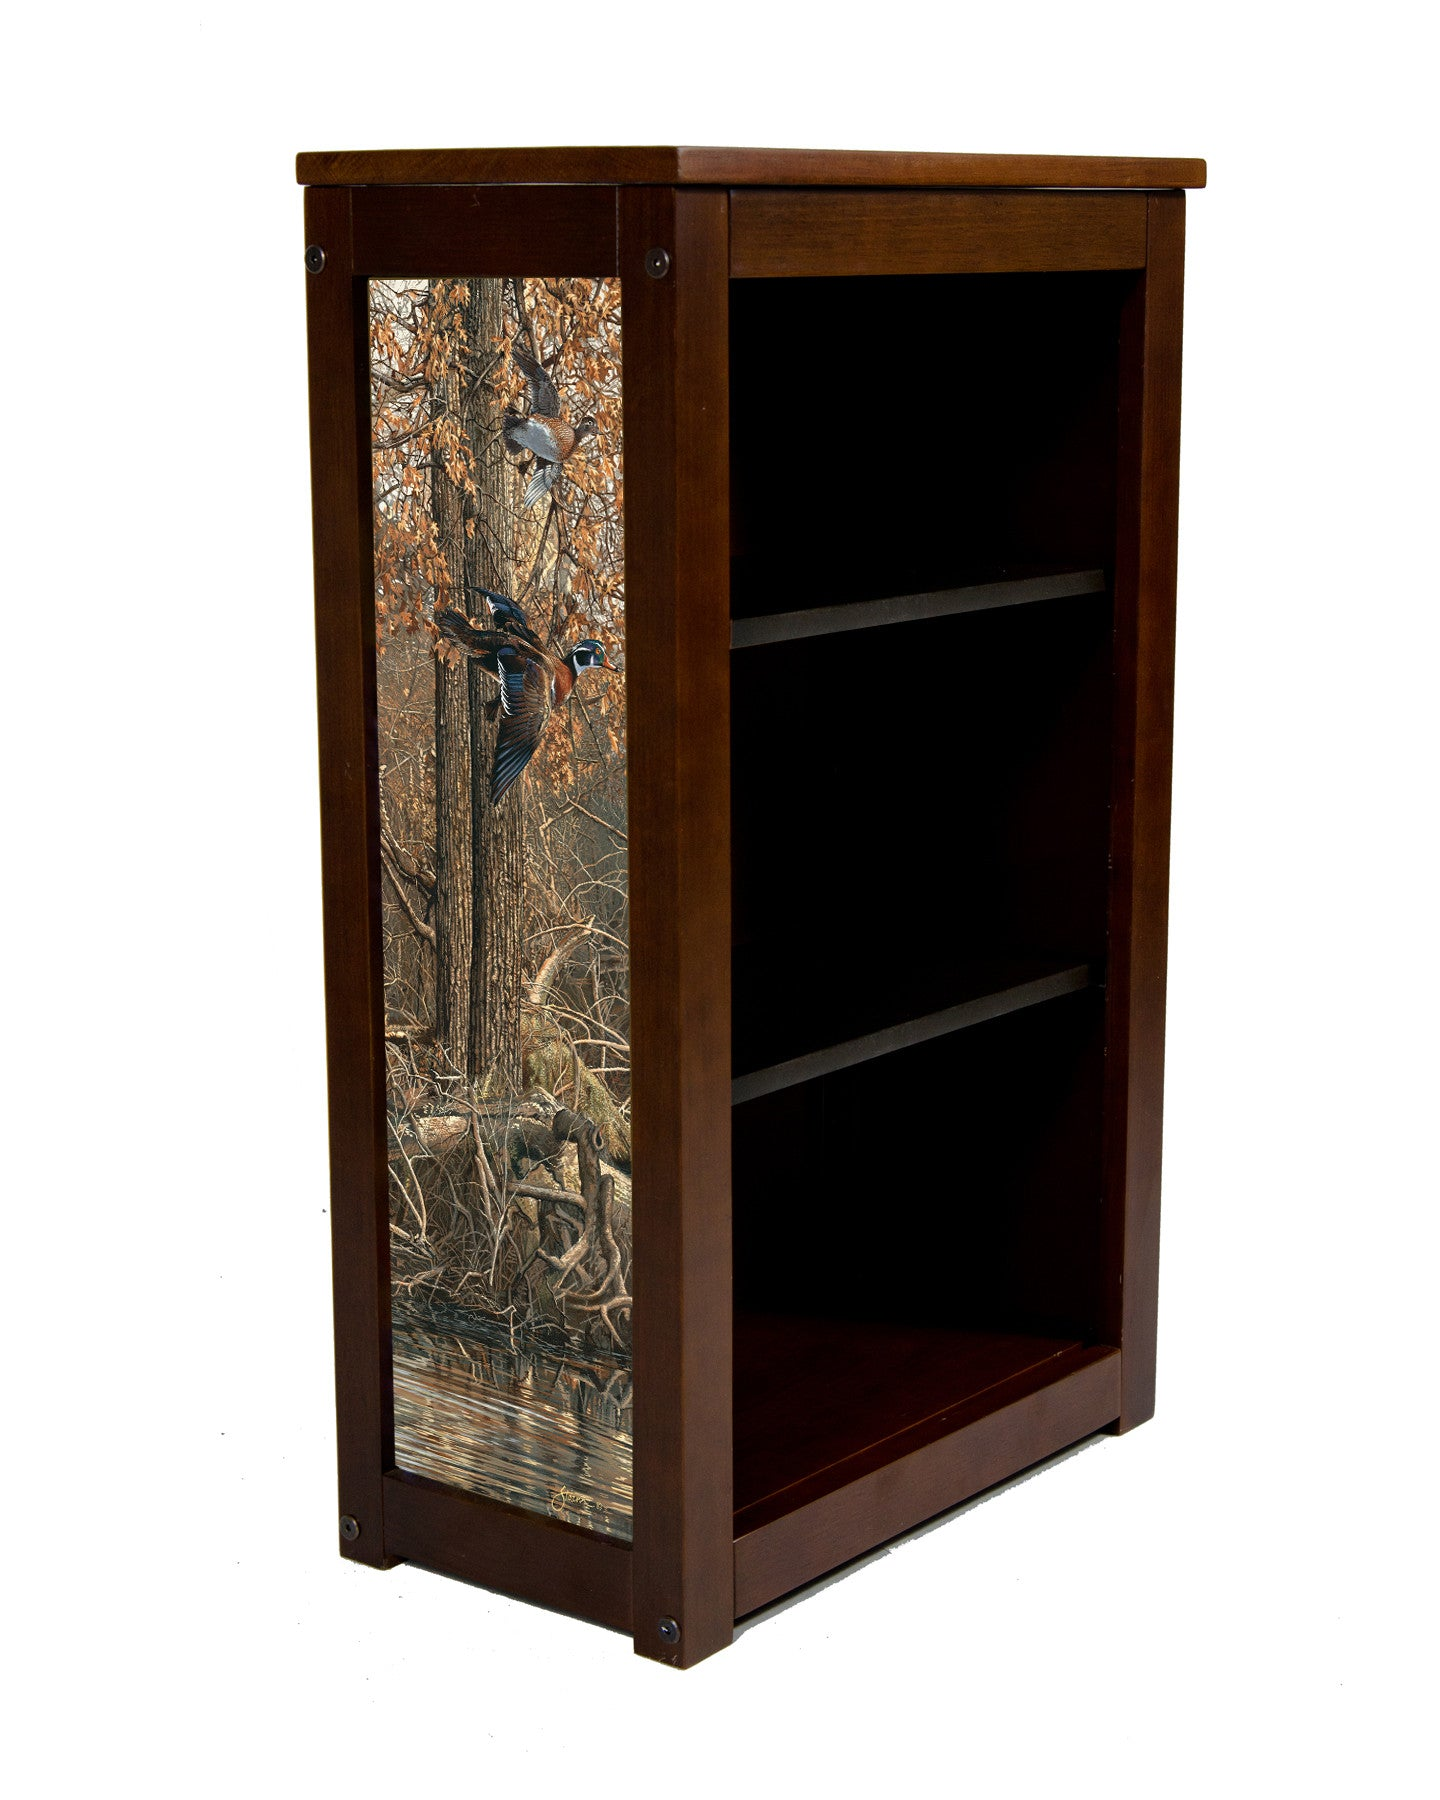 Book Cabinet with La Grue Woodies by Scott Storm